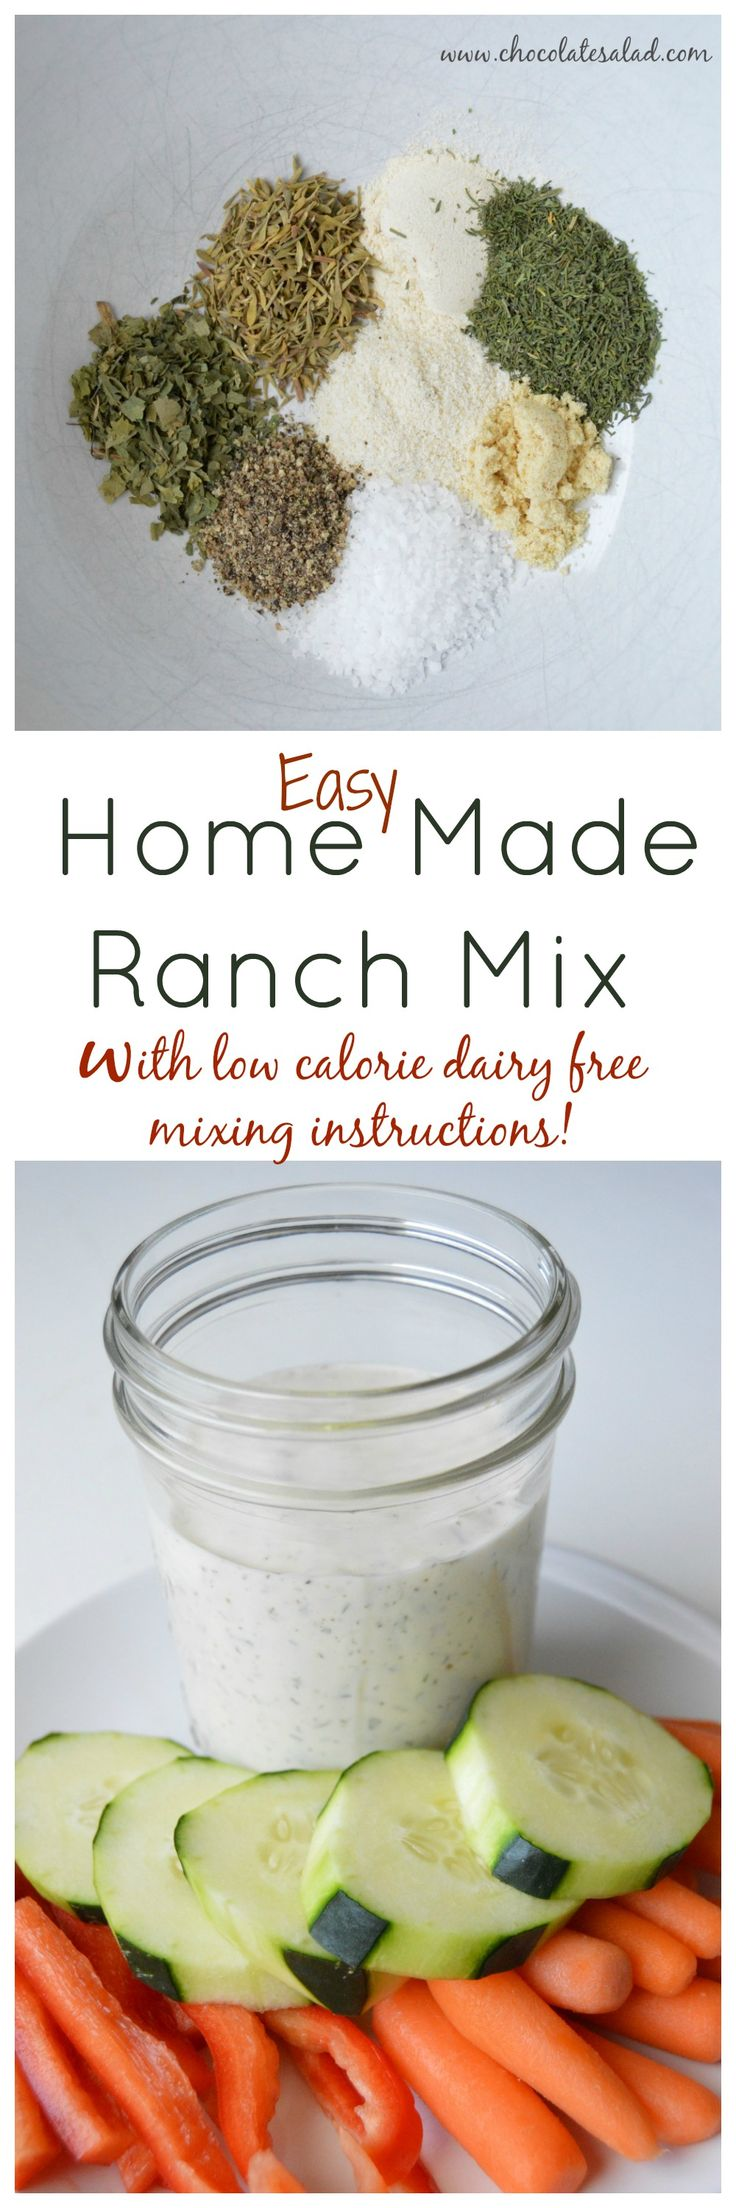 Yay for healthy Ranch Dressing! Can be made with as little as 40 calories a serving! Home Made Ranch Mix on chocolatesalad.com